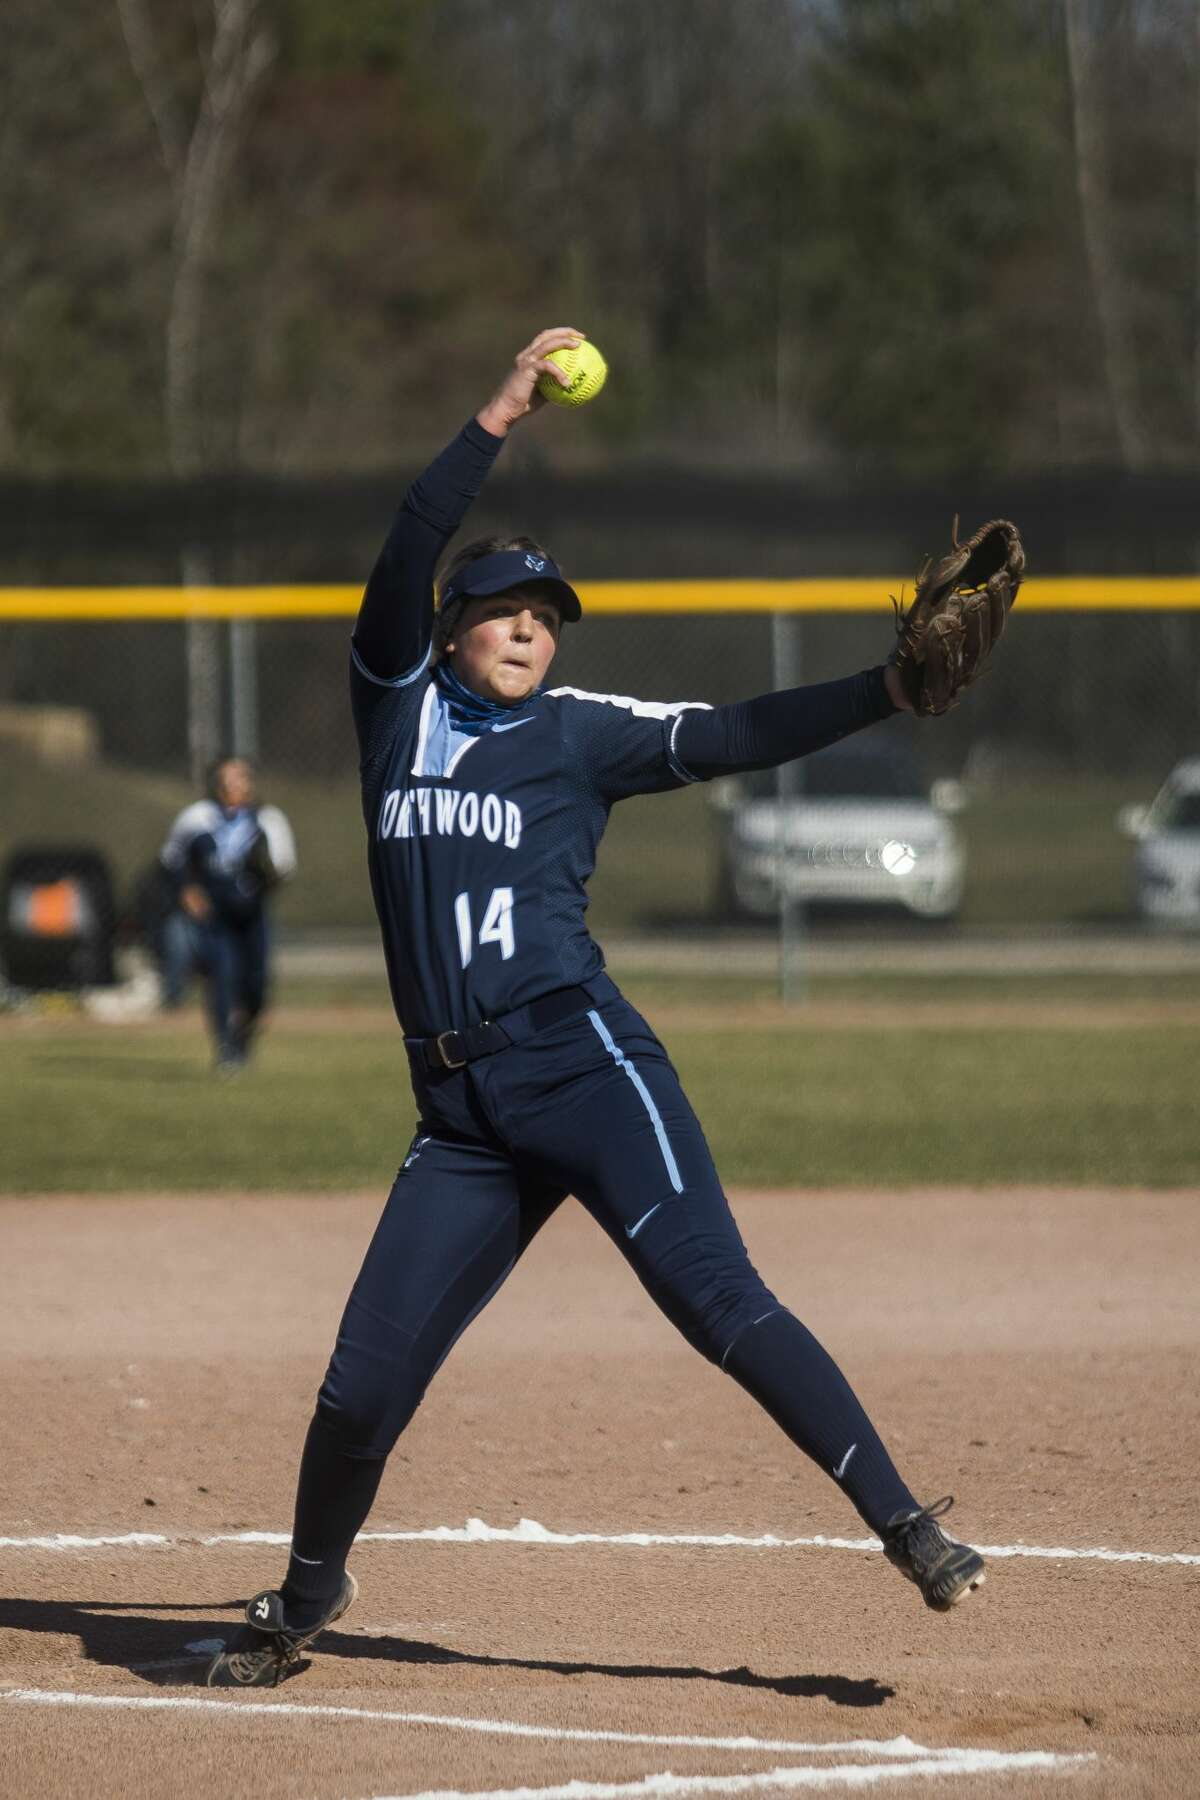 Northwood's Taylor Wright pitches the ball during the Timberwolves' doubleheader against Wayne State Friday, April 2, 2021 at Northwood University. (Katy Kildee/kkildee@mdn.net)